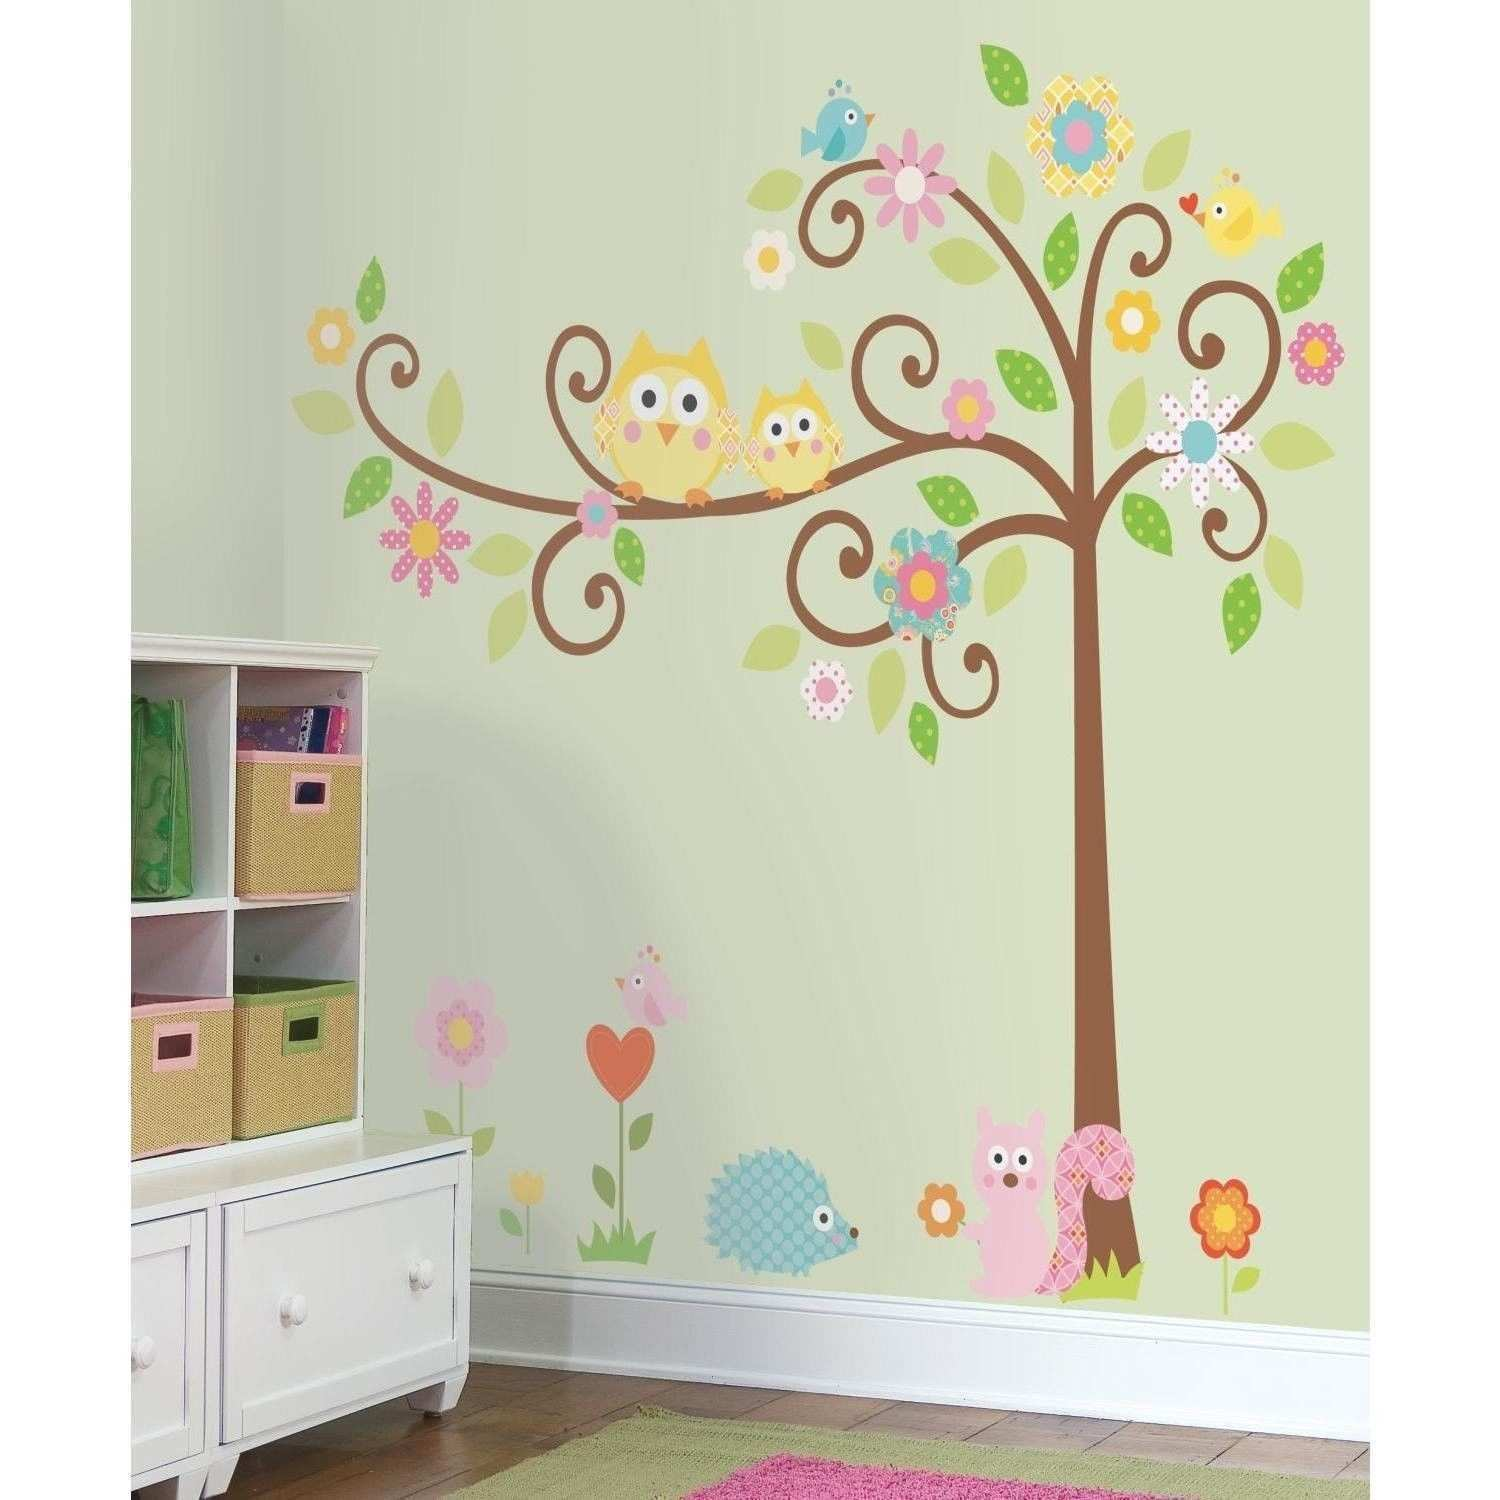 Zebra Print and Pink Room Decor Unique 38 Lovely Baby Room Wall